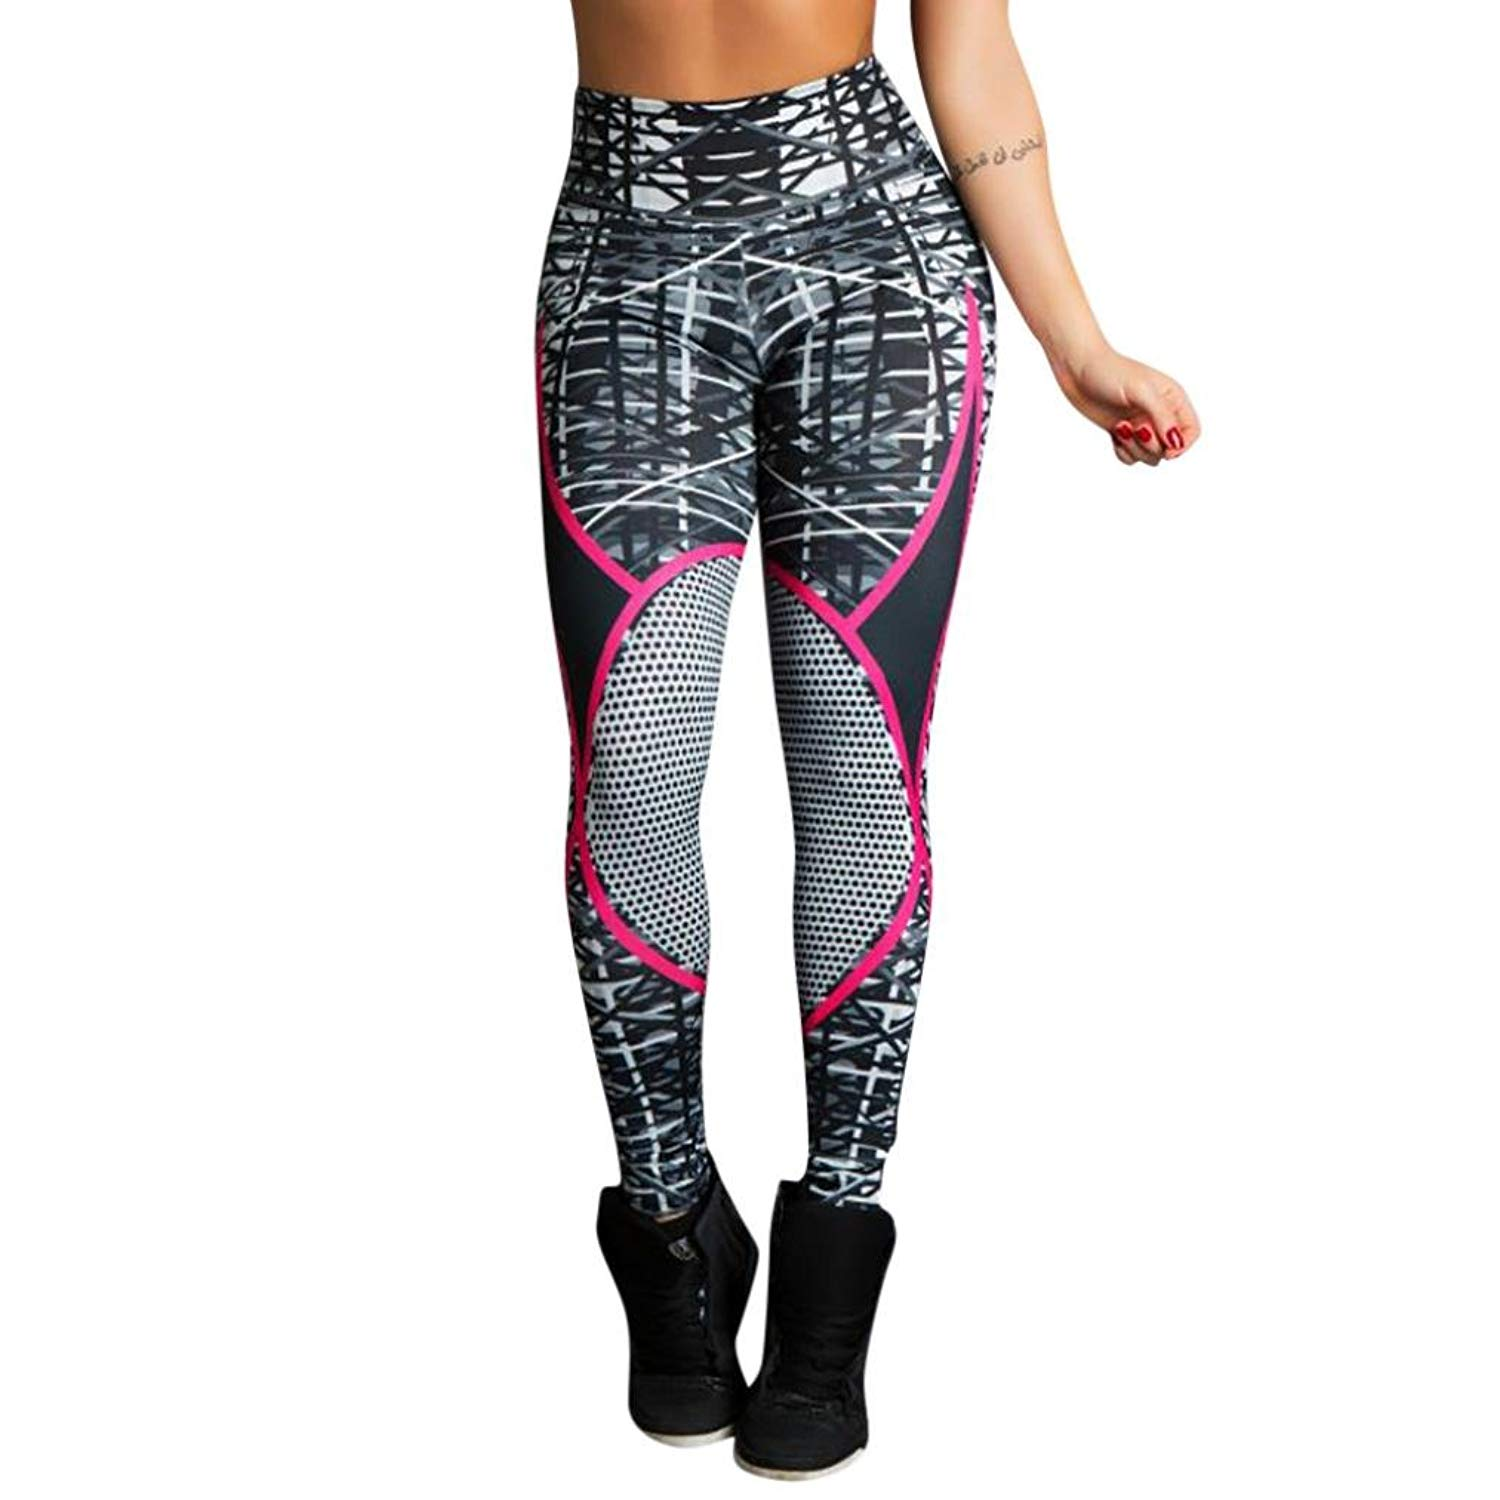 c4642ddf39a46e Get Quotations · Dreaman Women's Elastic Print Workout mesh Ripped Leggings  Fitness Sports Gym Running Yoga Athletic Tight Pants